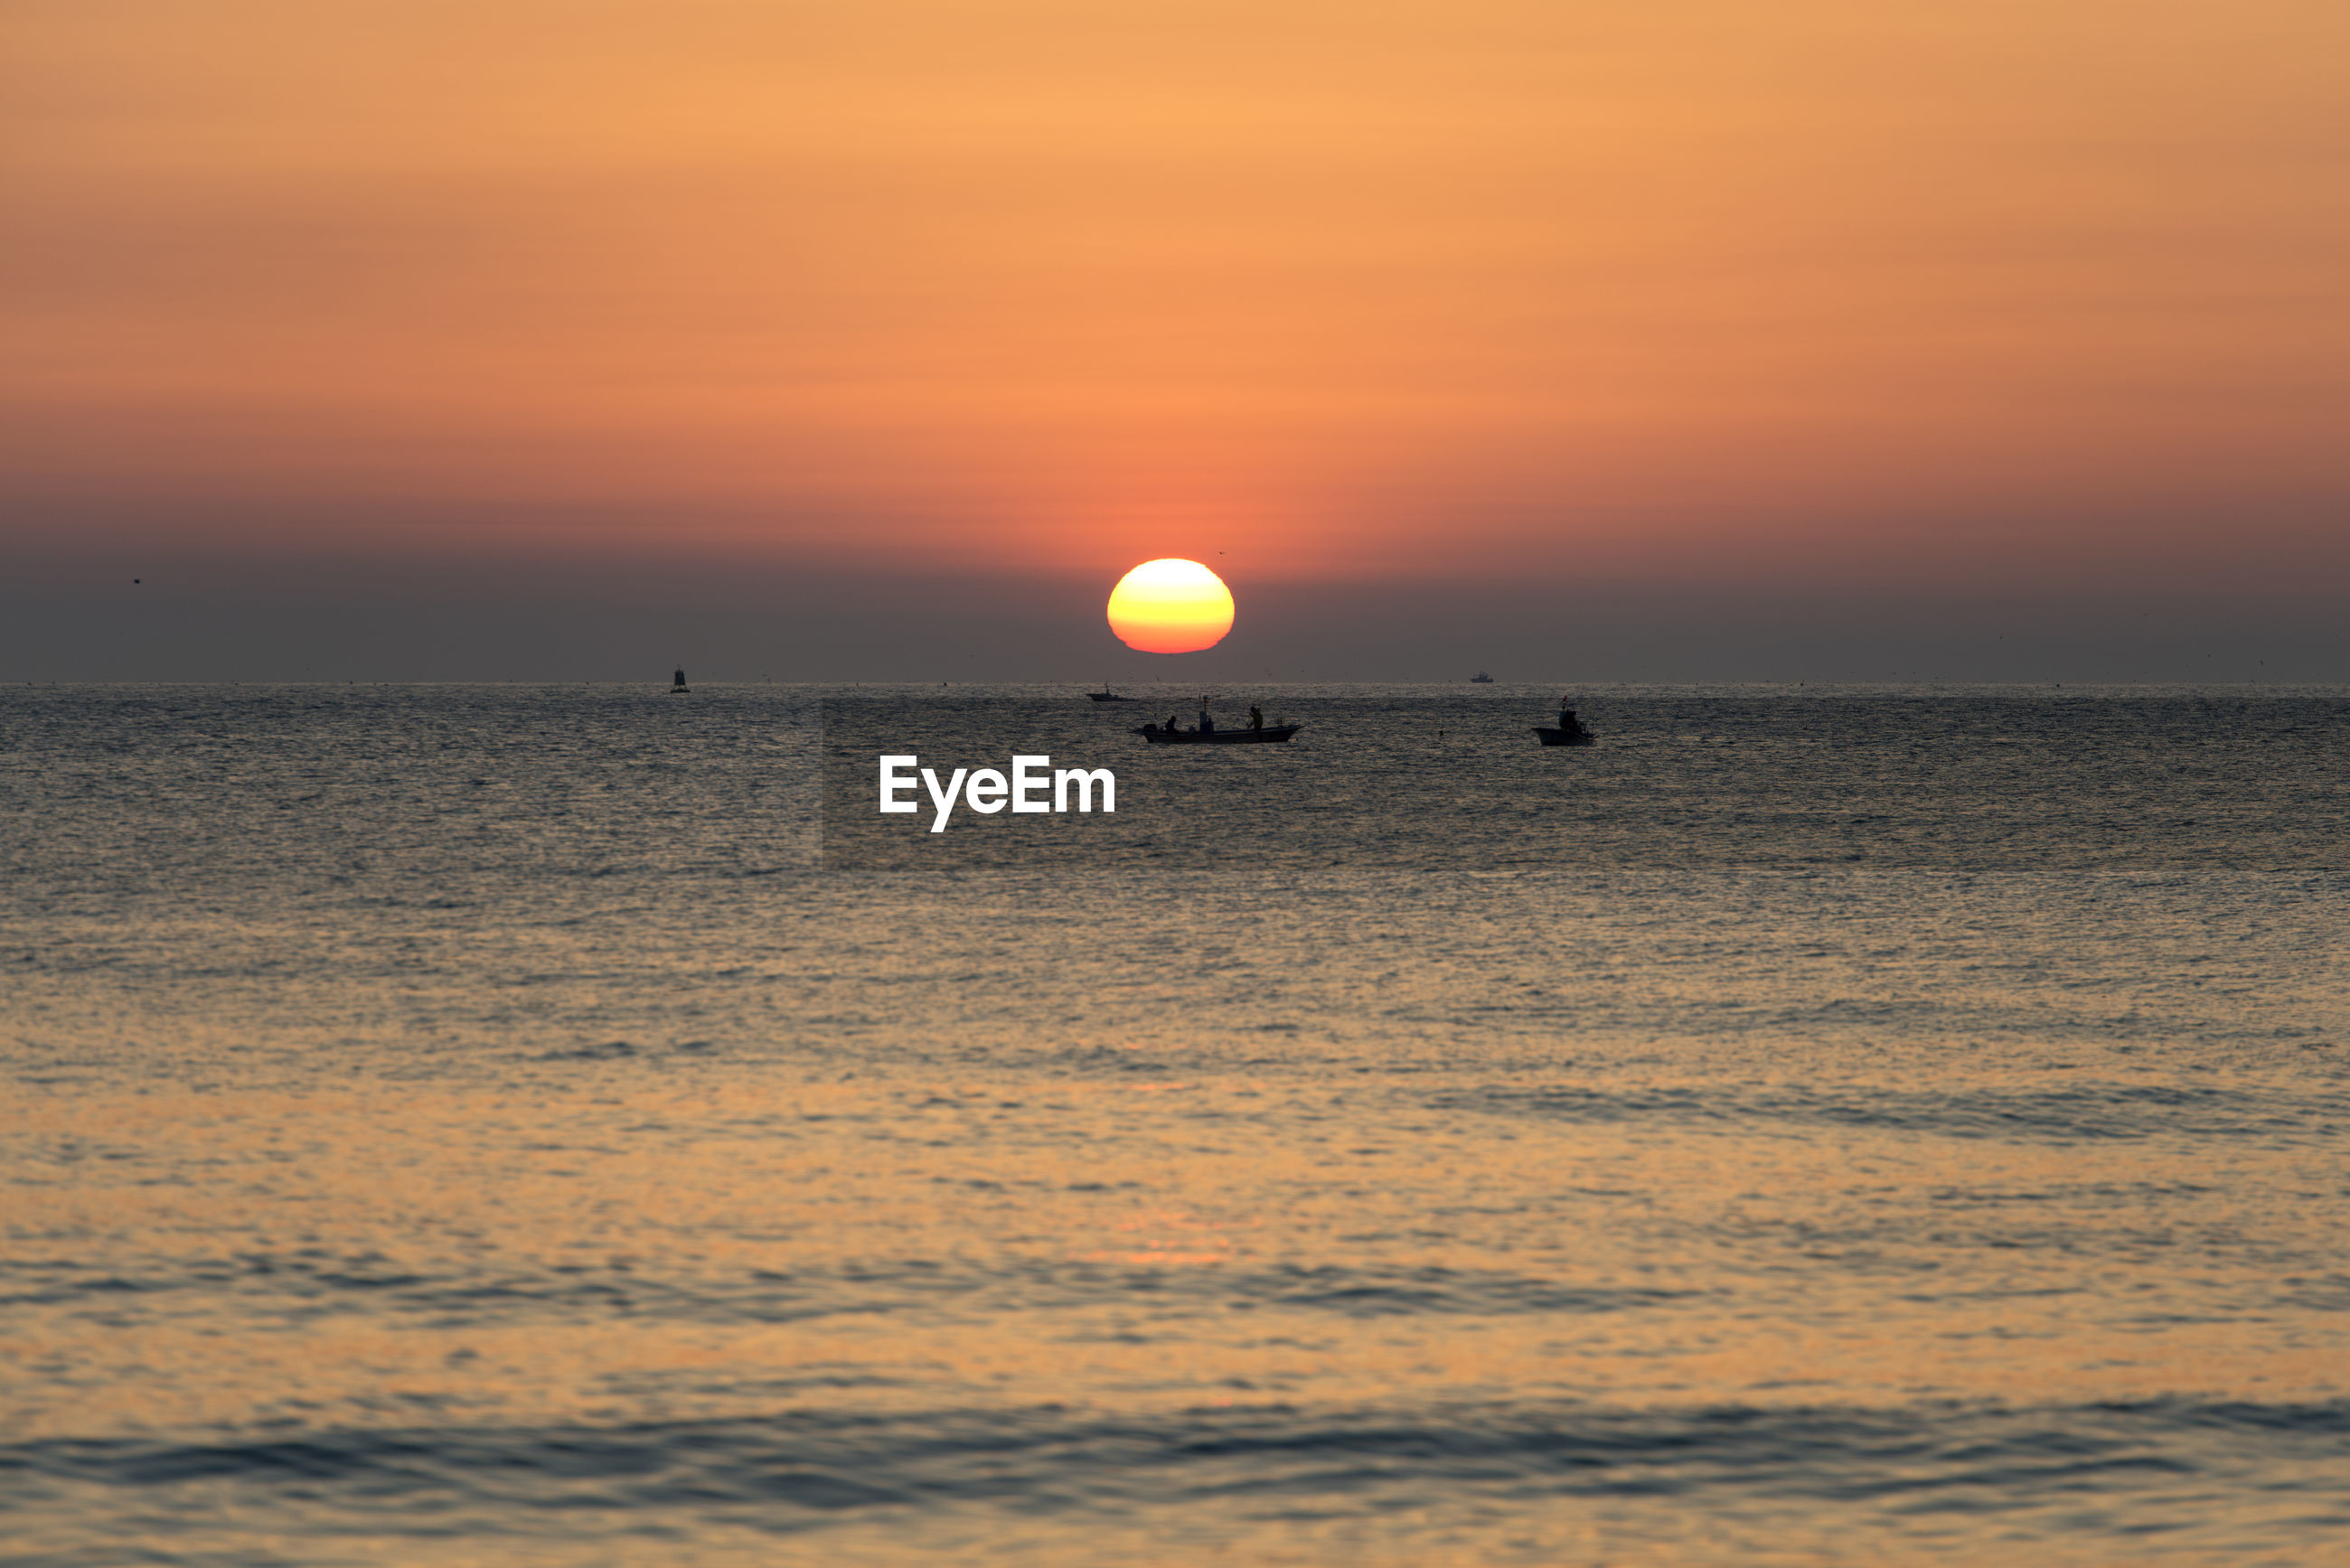 SCENIC VIEW OF SEA AGAINST SUNSET SKY